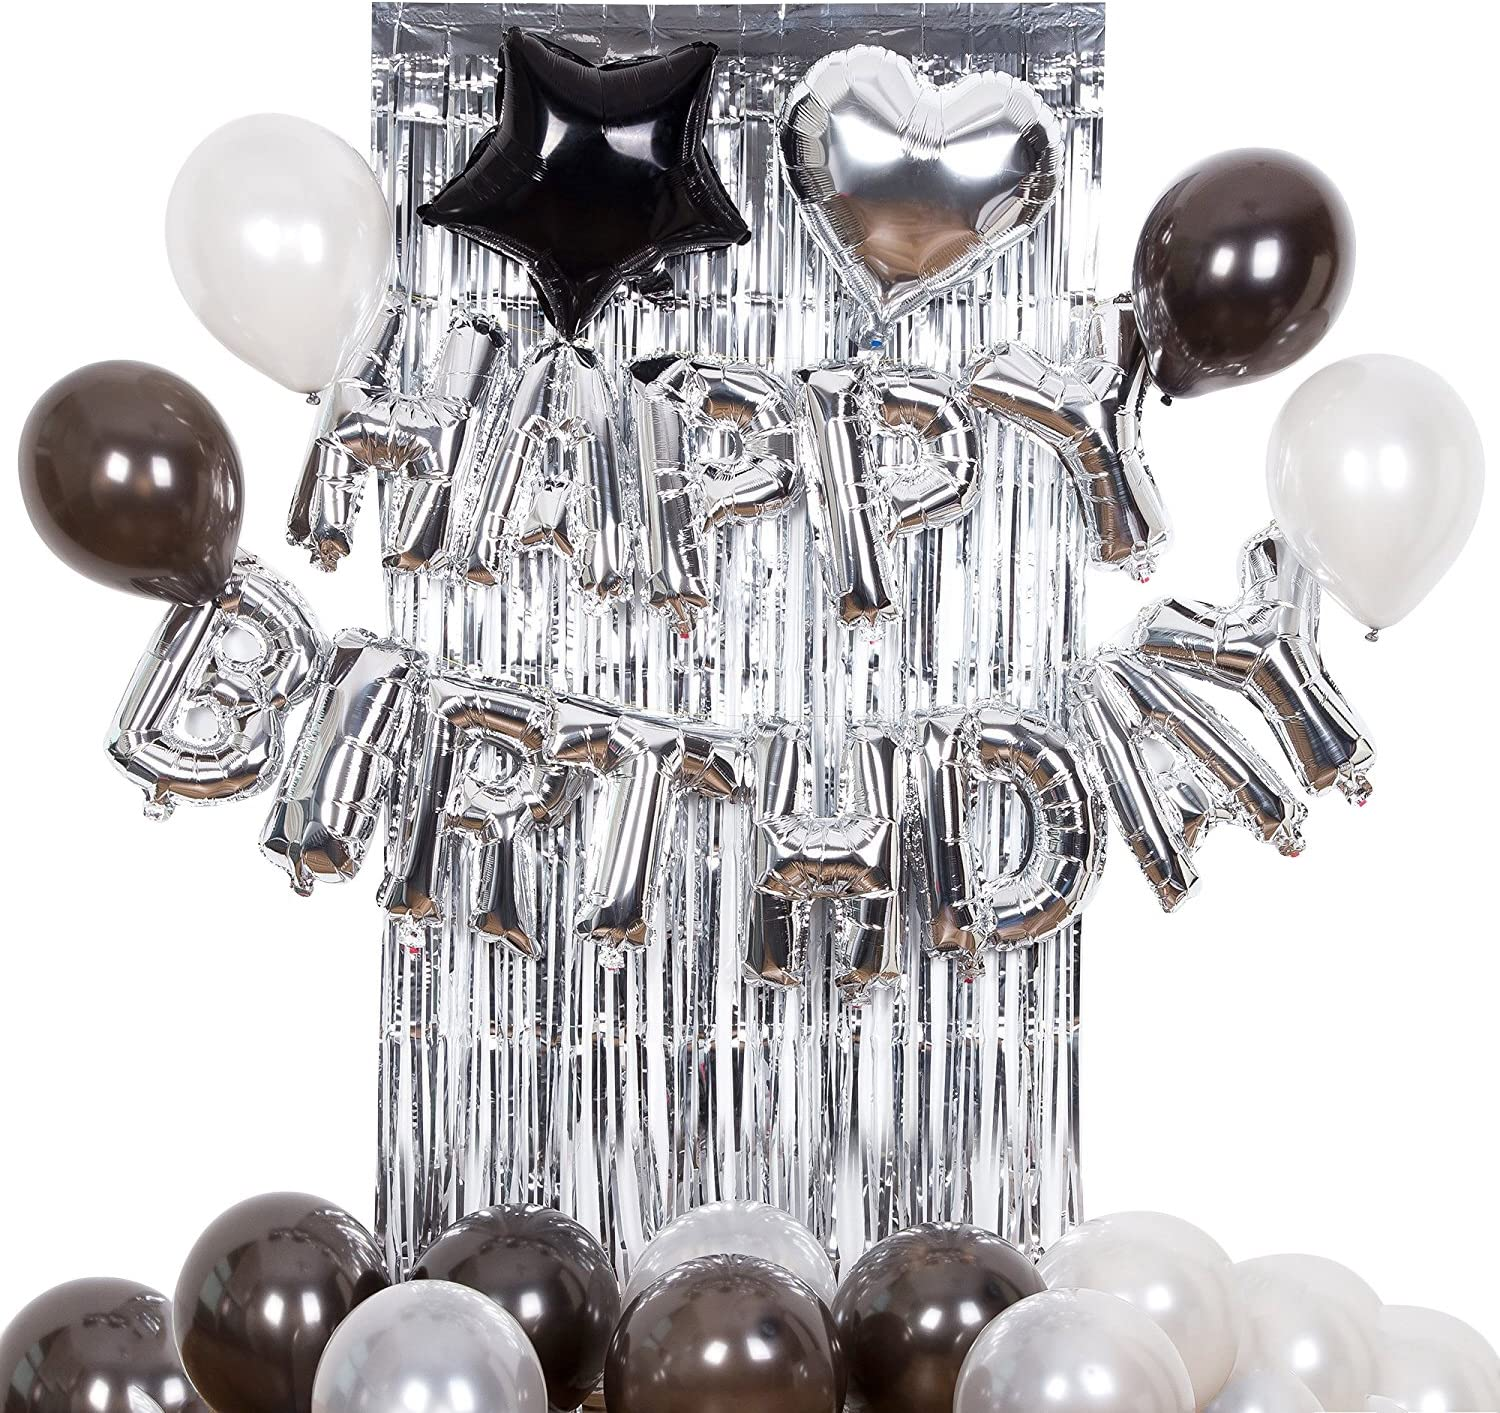 Silver Happy Birthday Alphabet Balloon Banner for Birthday Party Decoration Black and Silver Brilliant Foil Balloons Balloons, Metallic Tinsel Foil Fringe Curtains